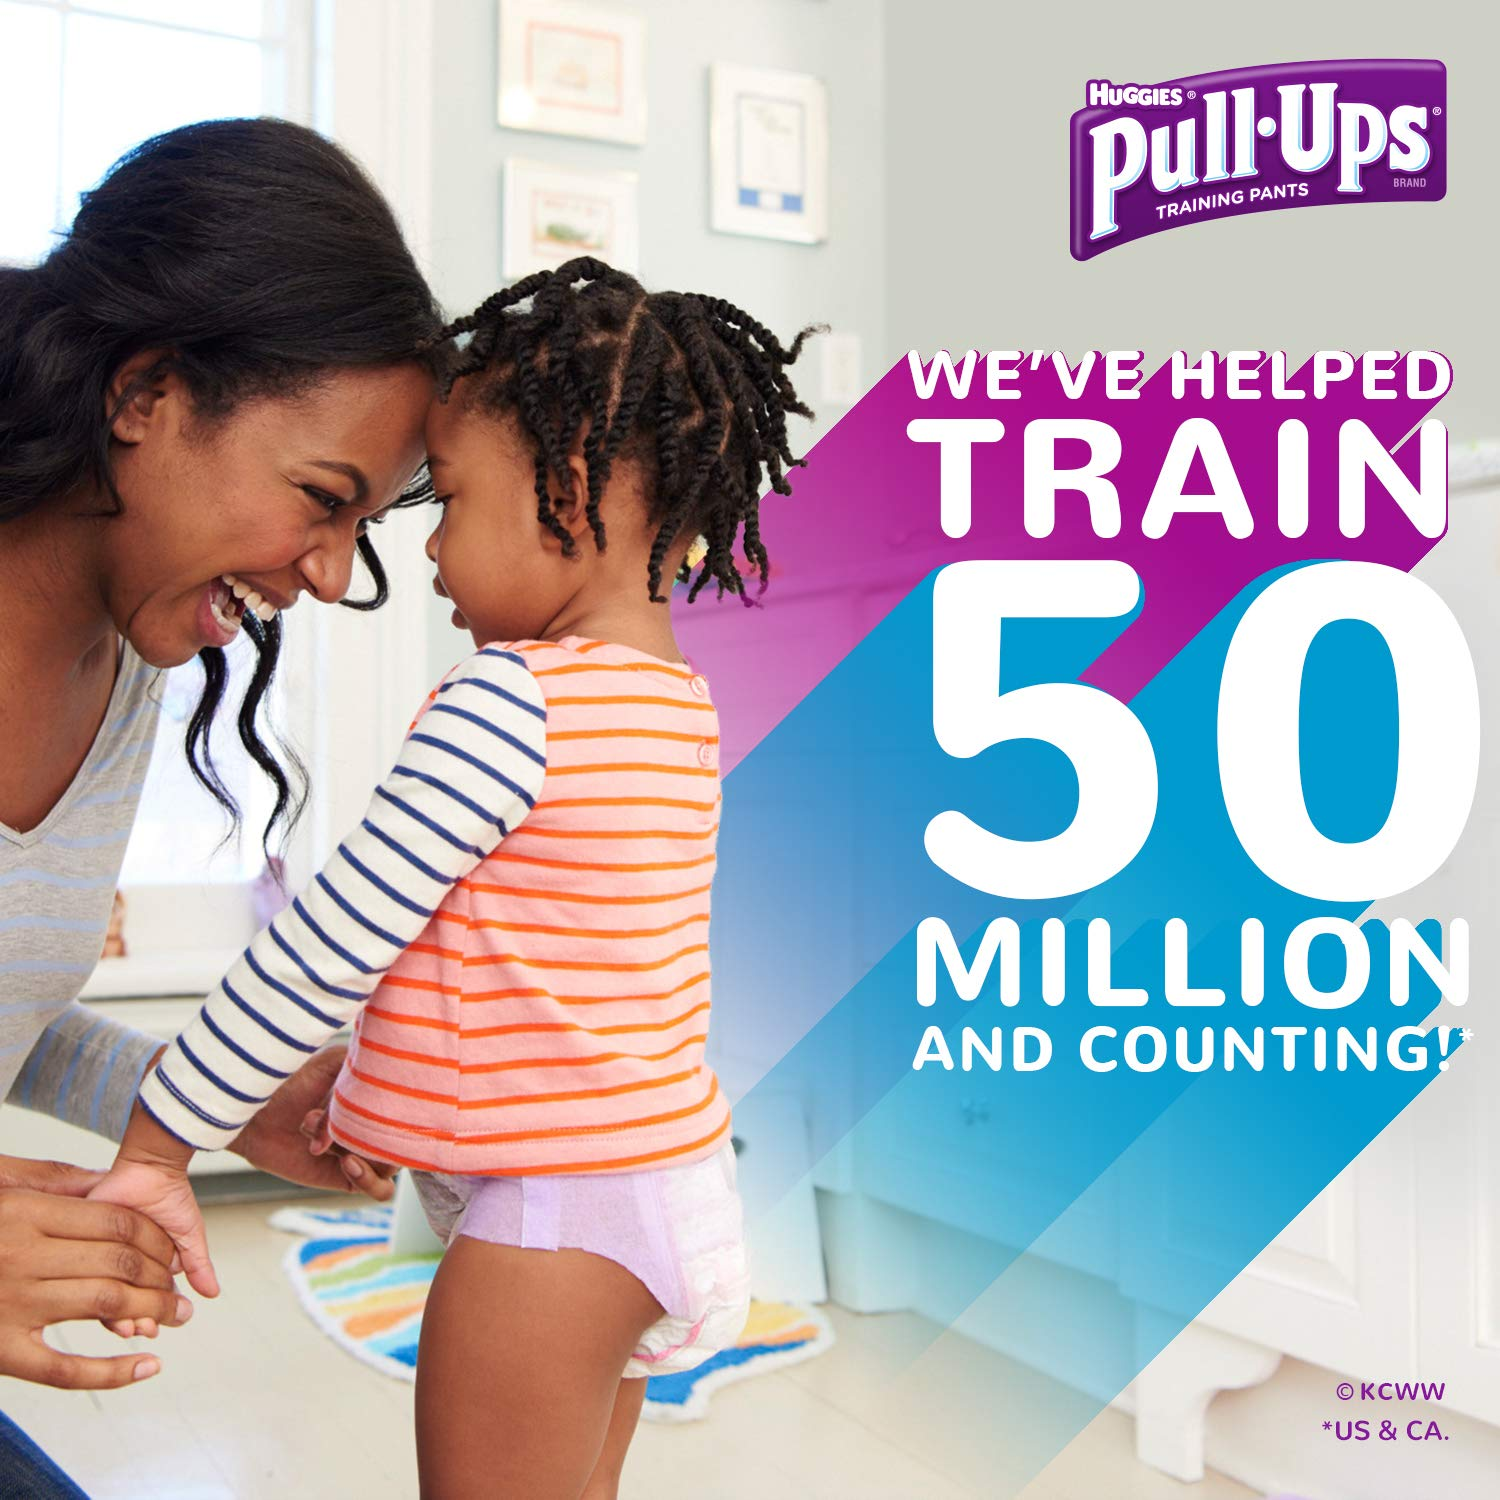 Pull-Ups Learning Designs for Girls Potty Training Pants, 12M-24M  (14-26 Pound), 112 Count (Packaging May Vary)